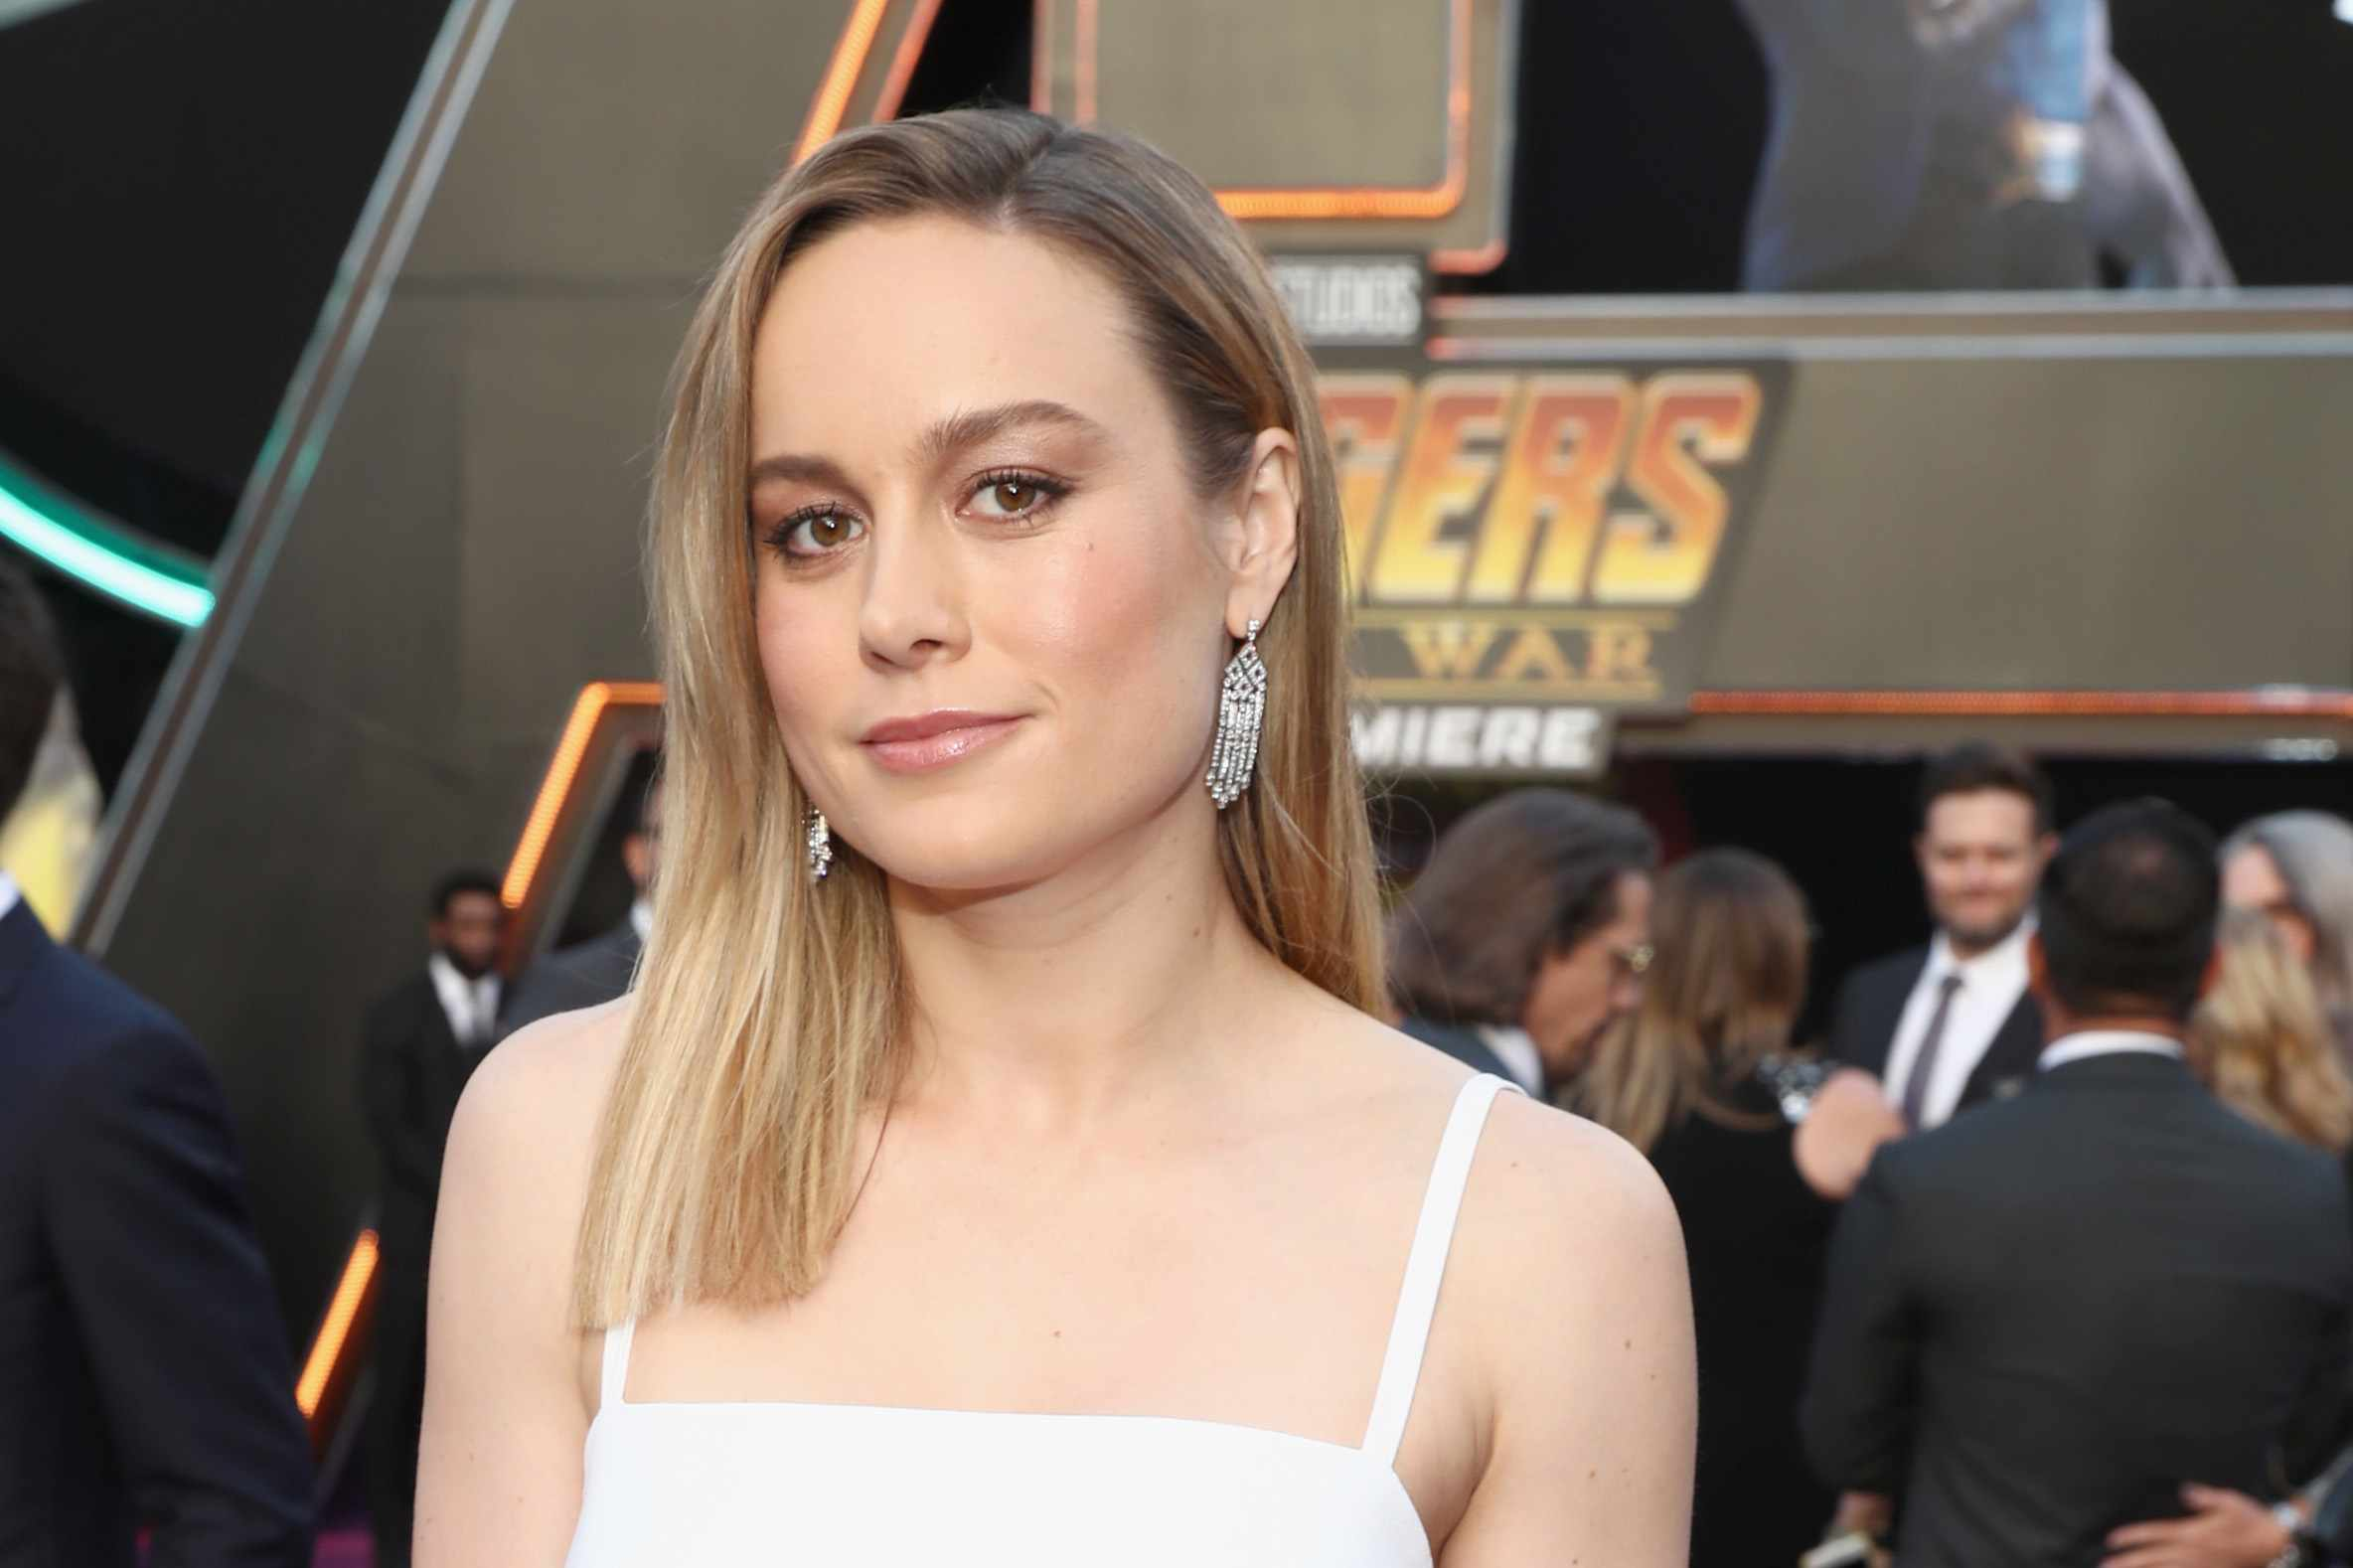 Captain Marvel star Brie Larson attends Avengers: Infinity War premiere (Getty)